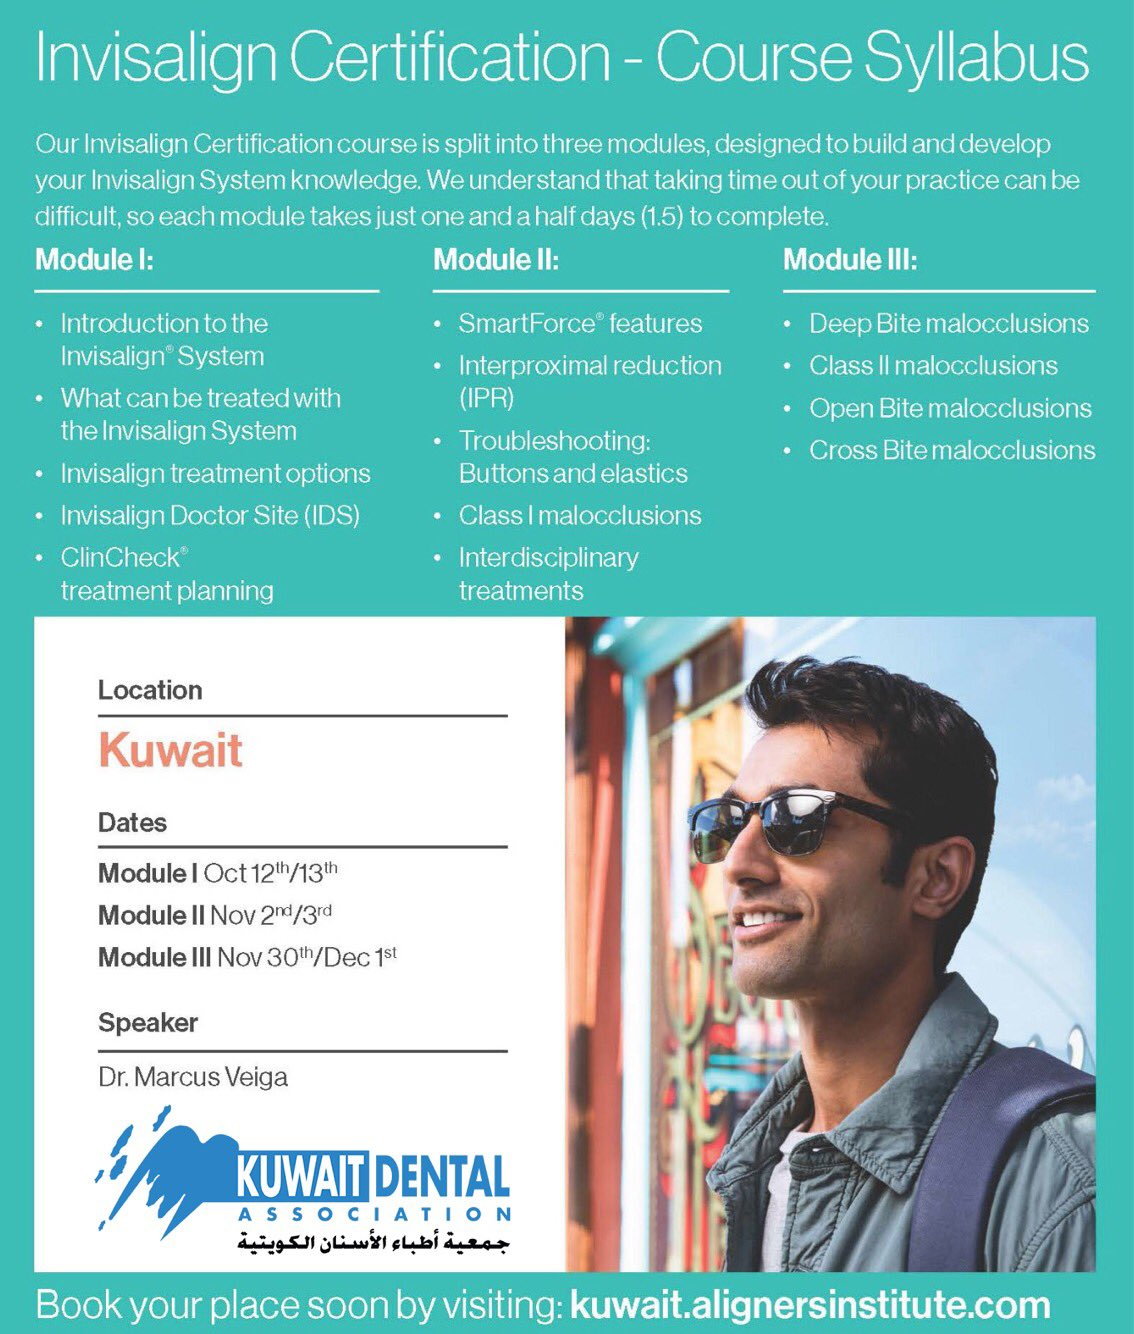 Kda On Twitter Invisalign Certification Course For More Info Dr